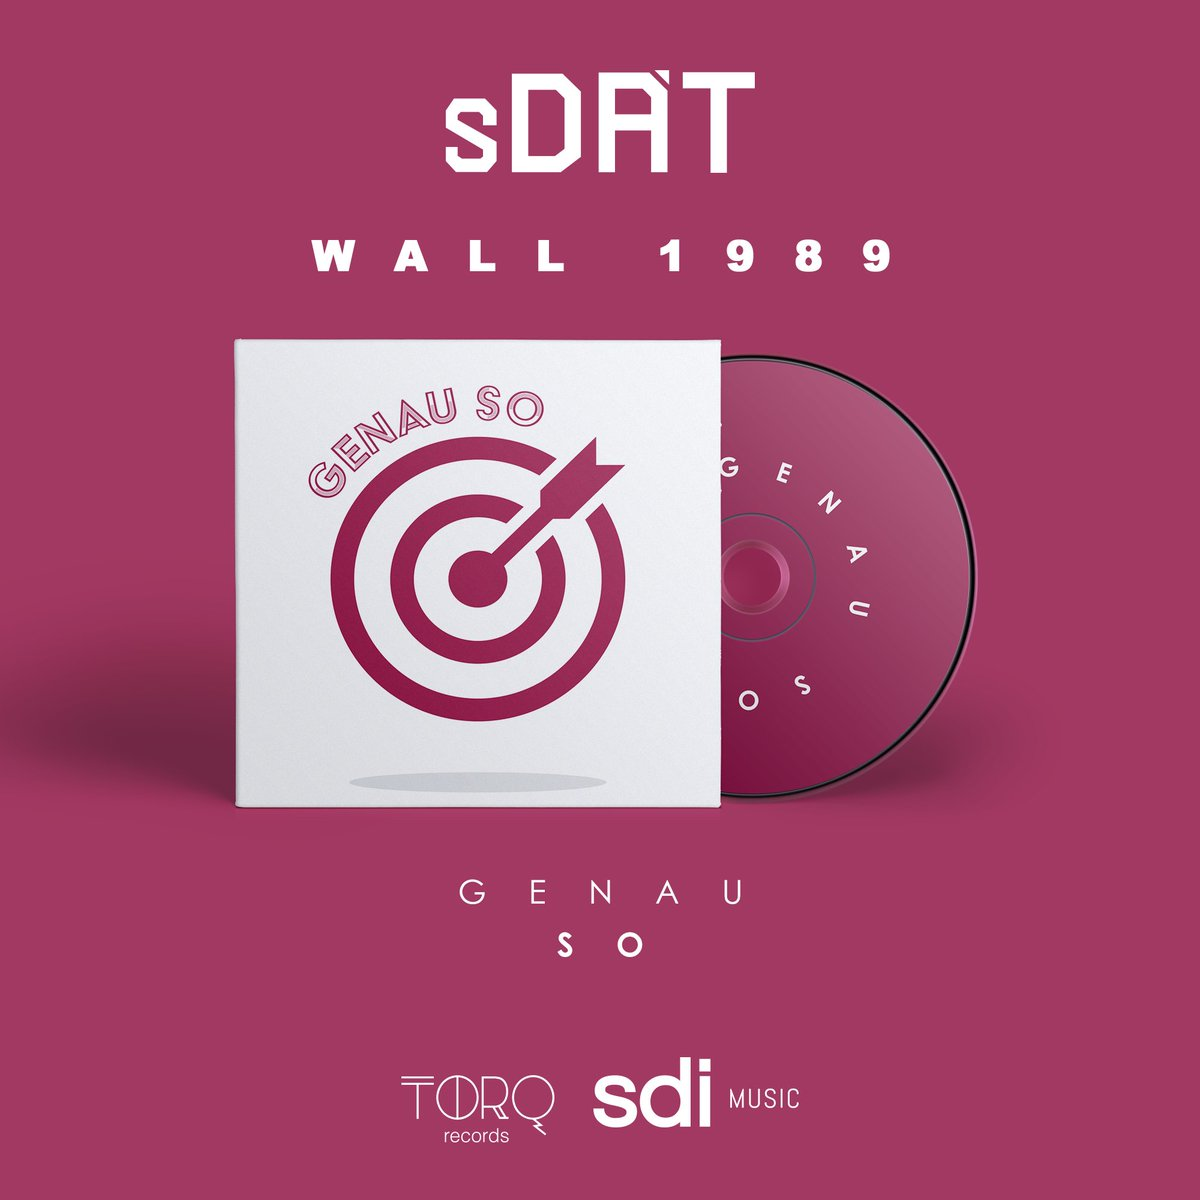 Wall 1989 by Sdat, is on the Genau So Compilation and the genre of the track is techno.   #techno #berlin #deutschland #berlinwall #berlinmusic #technomusic #night #life #recordlabel #subculture #track #newtrack #wave #street #electro #electroclash #eurodance #drummachinepic.twitter.com/gkyDcNbMlw